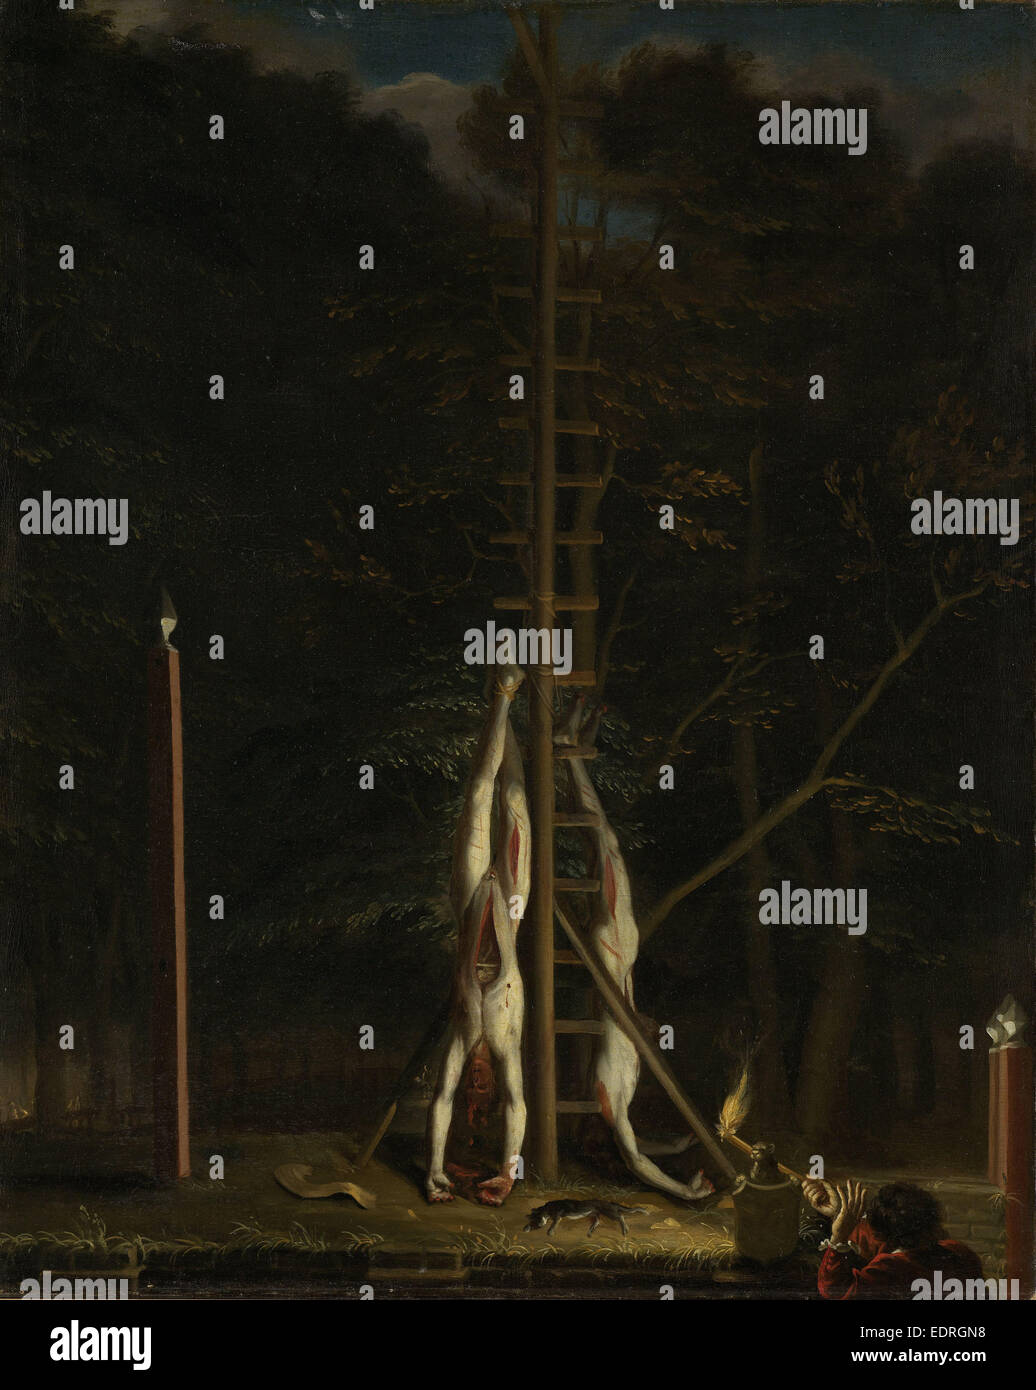 The Corpses of the De Witt Brothers, attributed to Jan de Baen, c. 1672 - c. 1675 - Stock Image